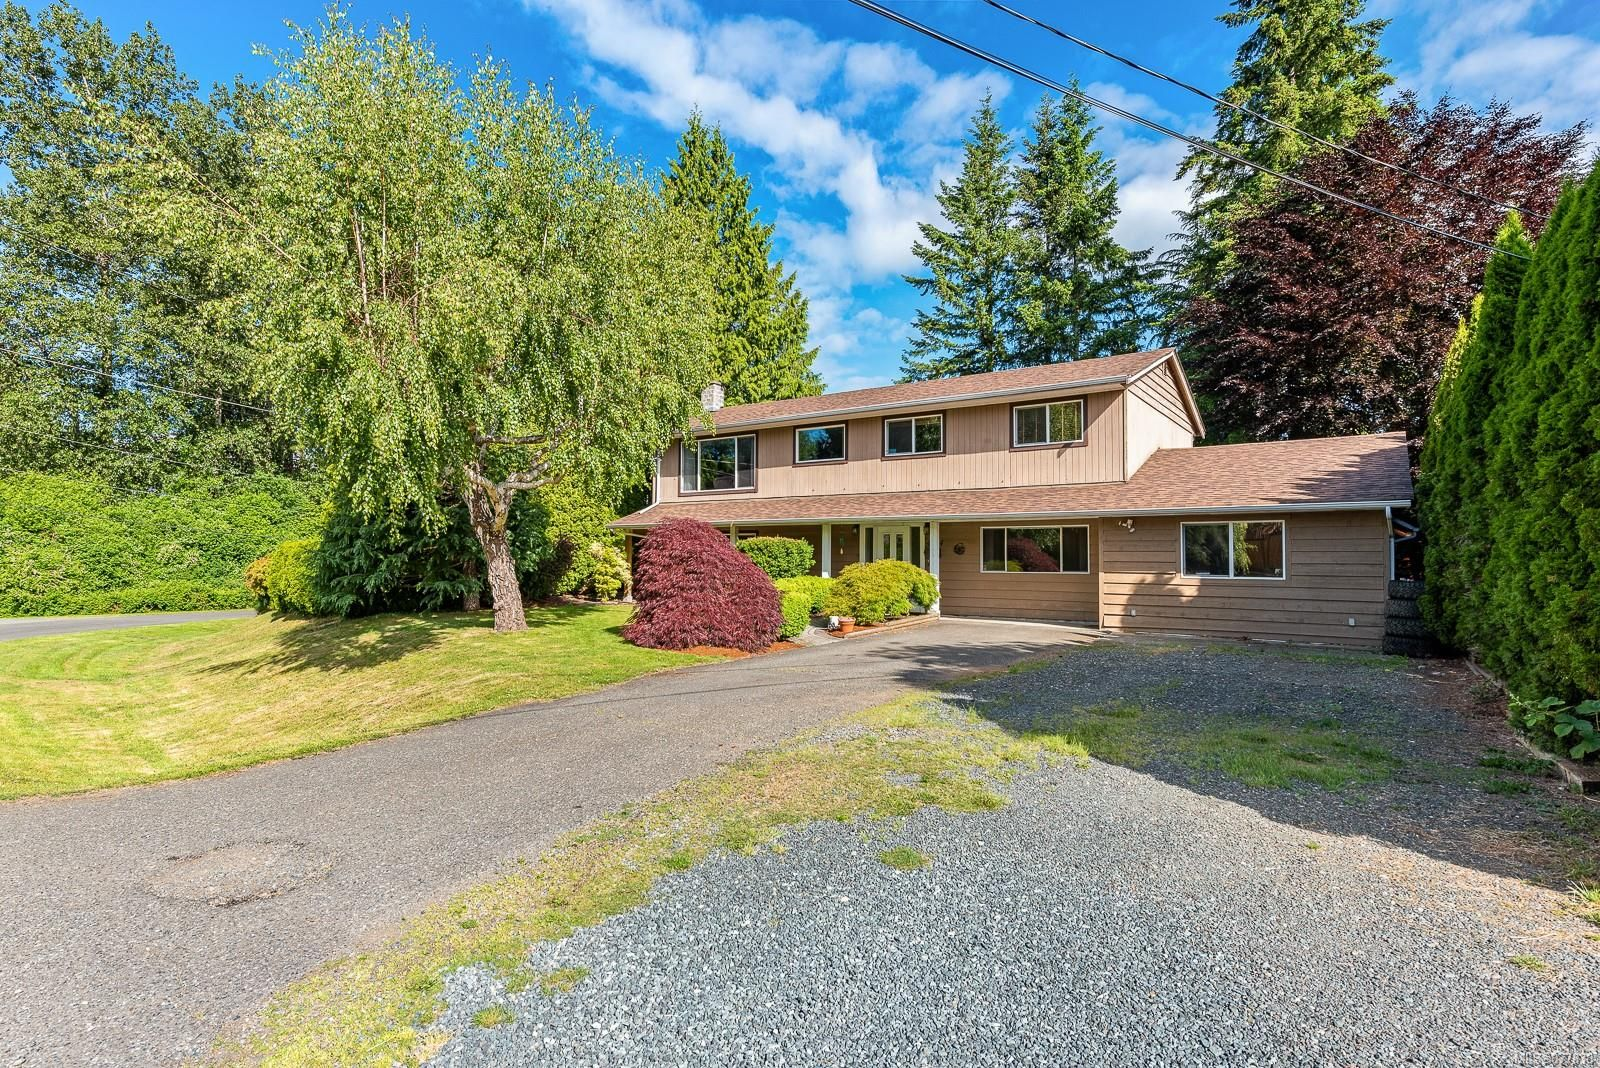 Main Photo: 4974 Adrian Rd in : CV Courtenay North House for sale (Comox Valley)  : MLS®# 877838